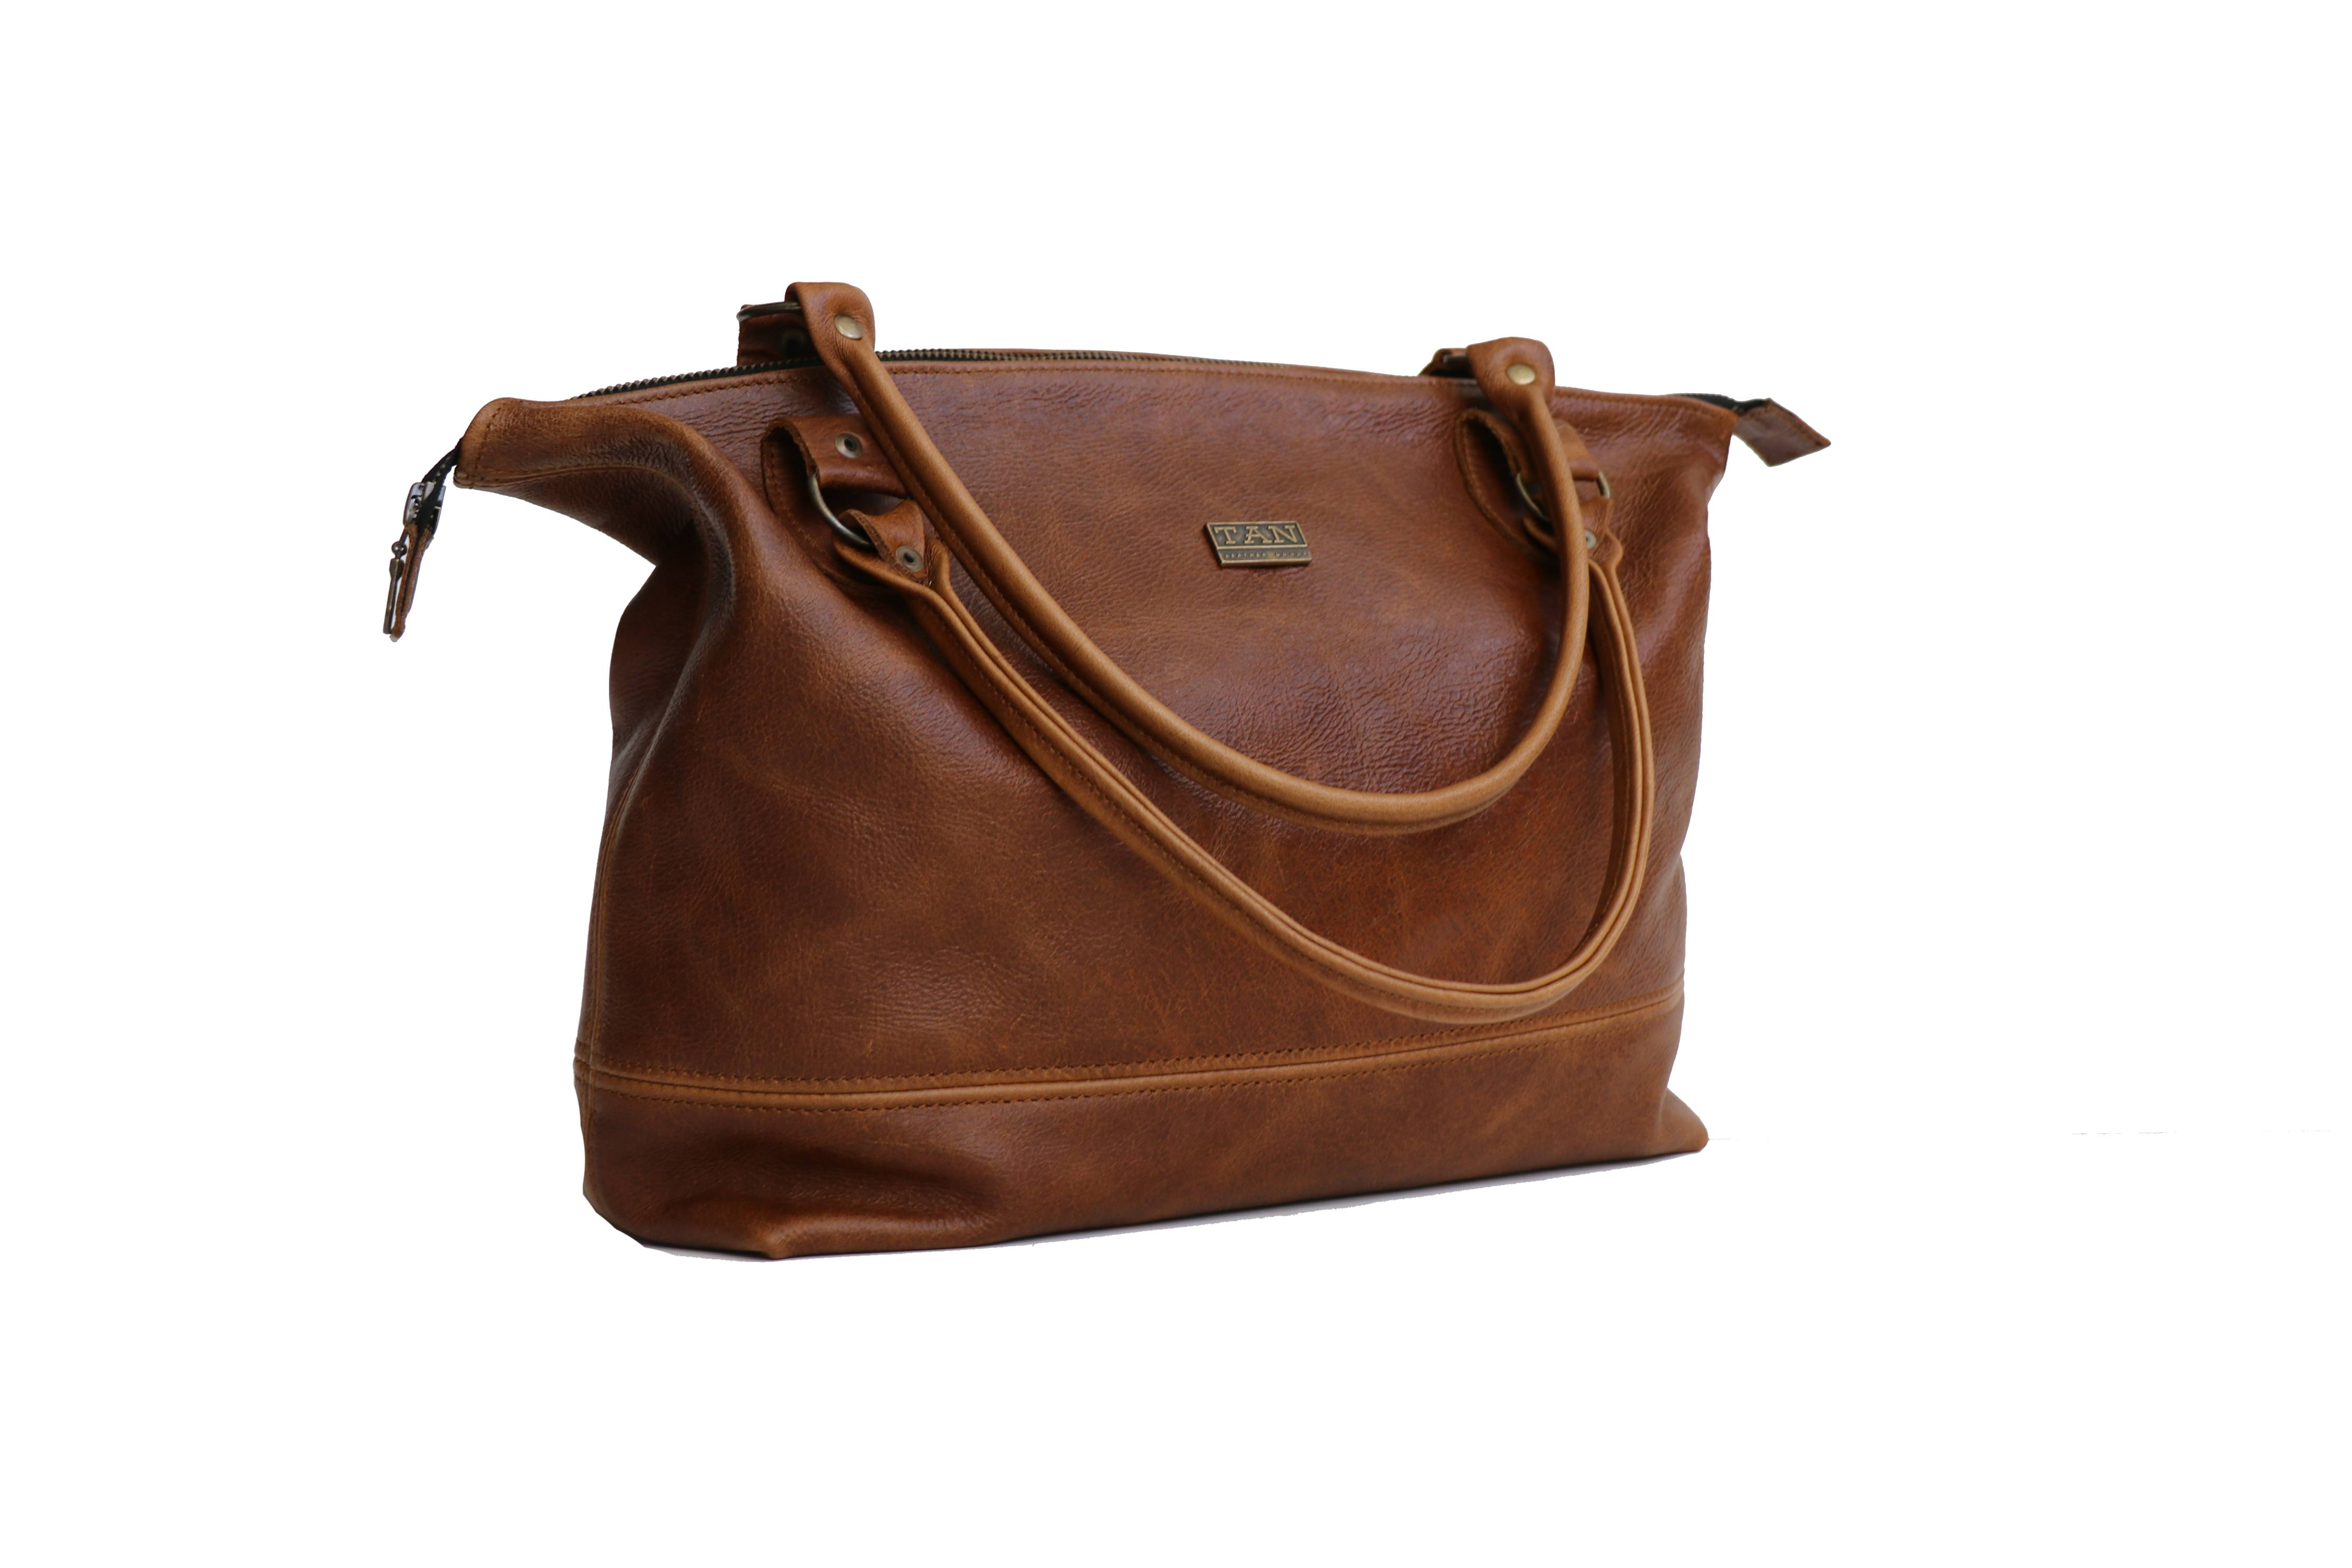 Daisy Leather Handbag Pecan